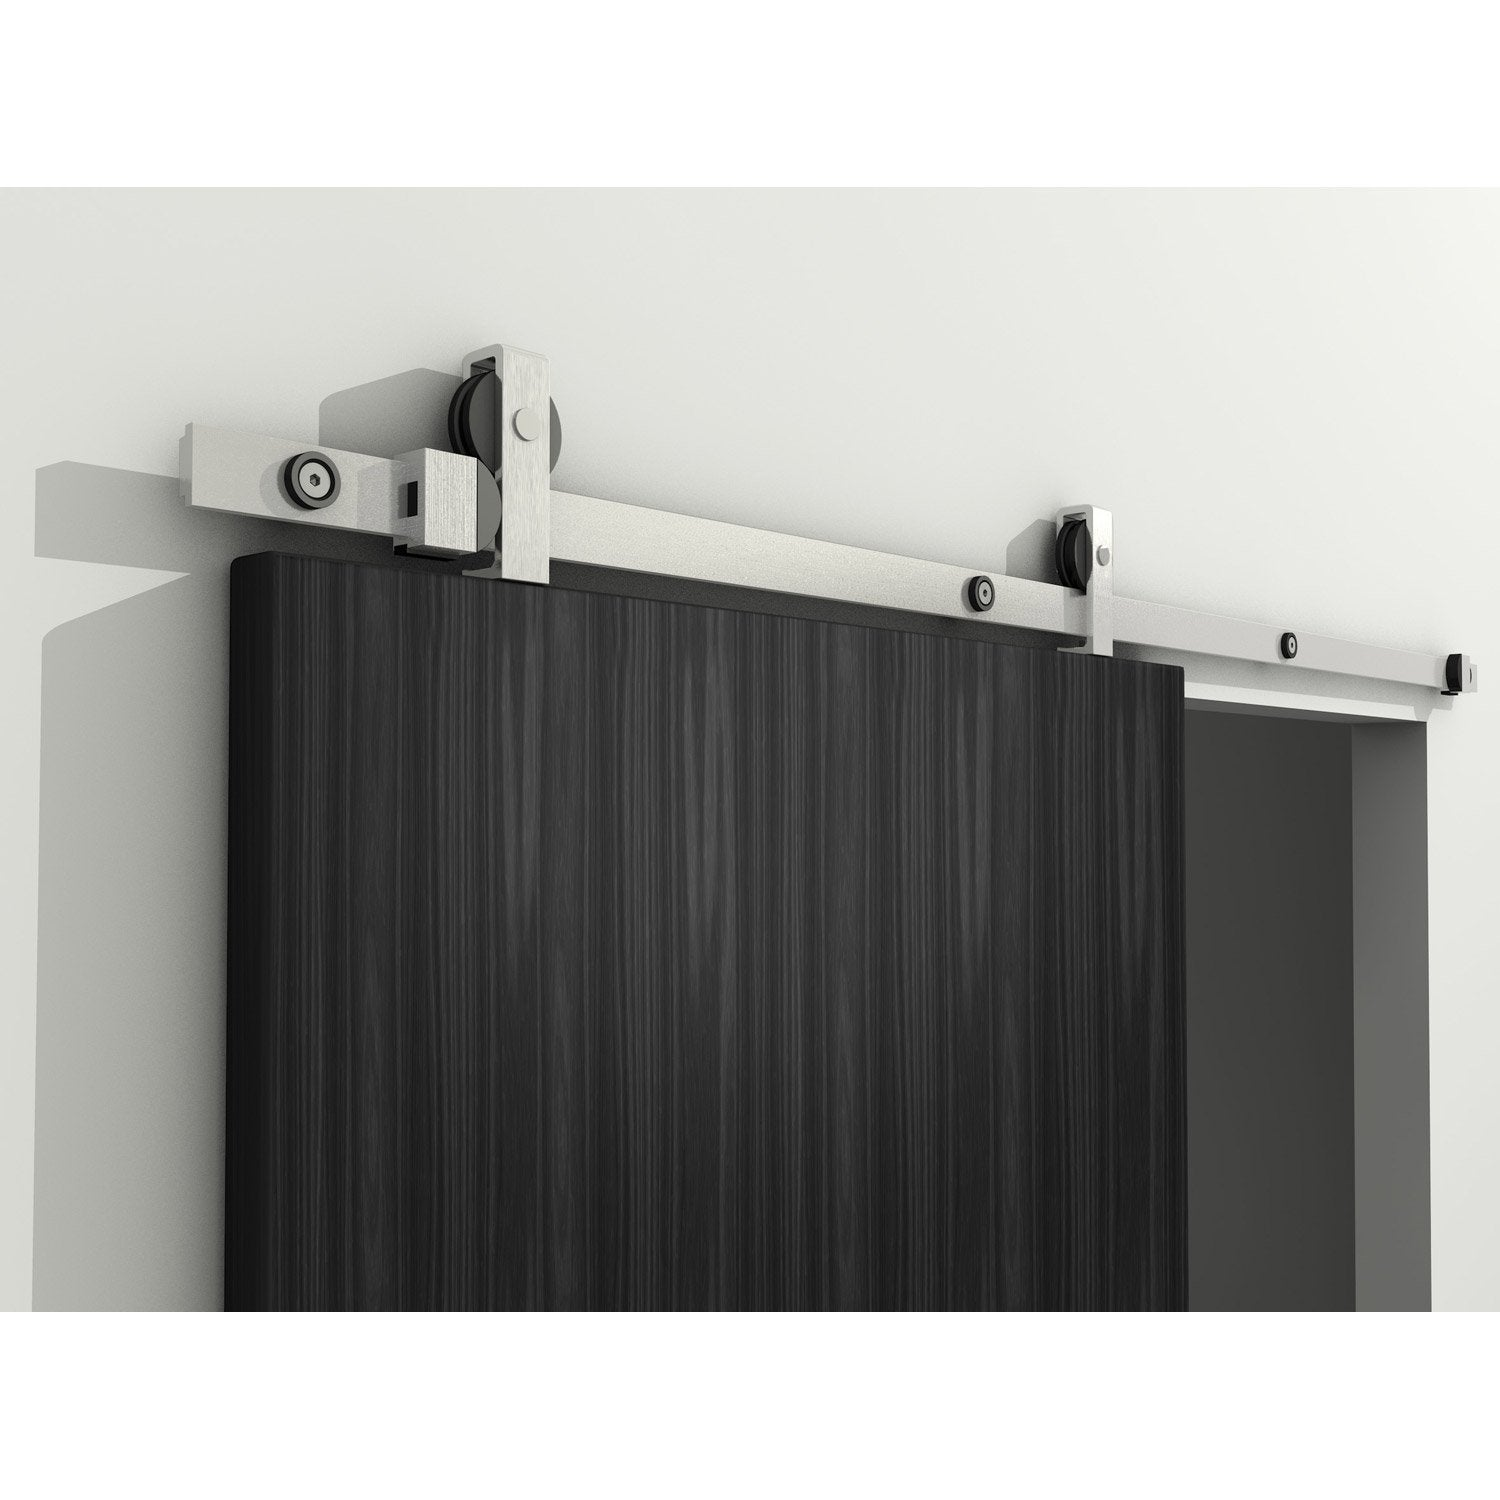 Rail coulissant modern pour porte de largeur 63 83 cm for Porte de garage en 3 metre de large